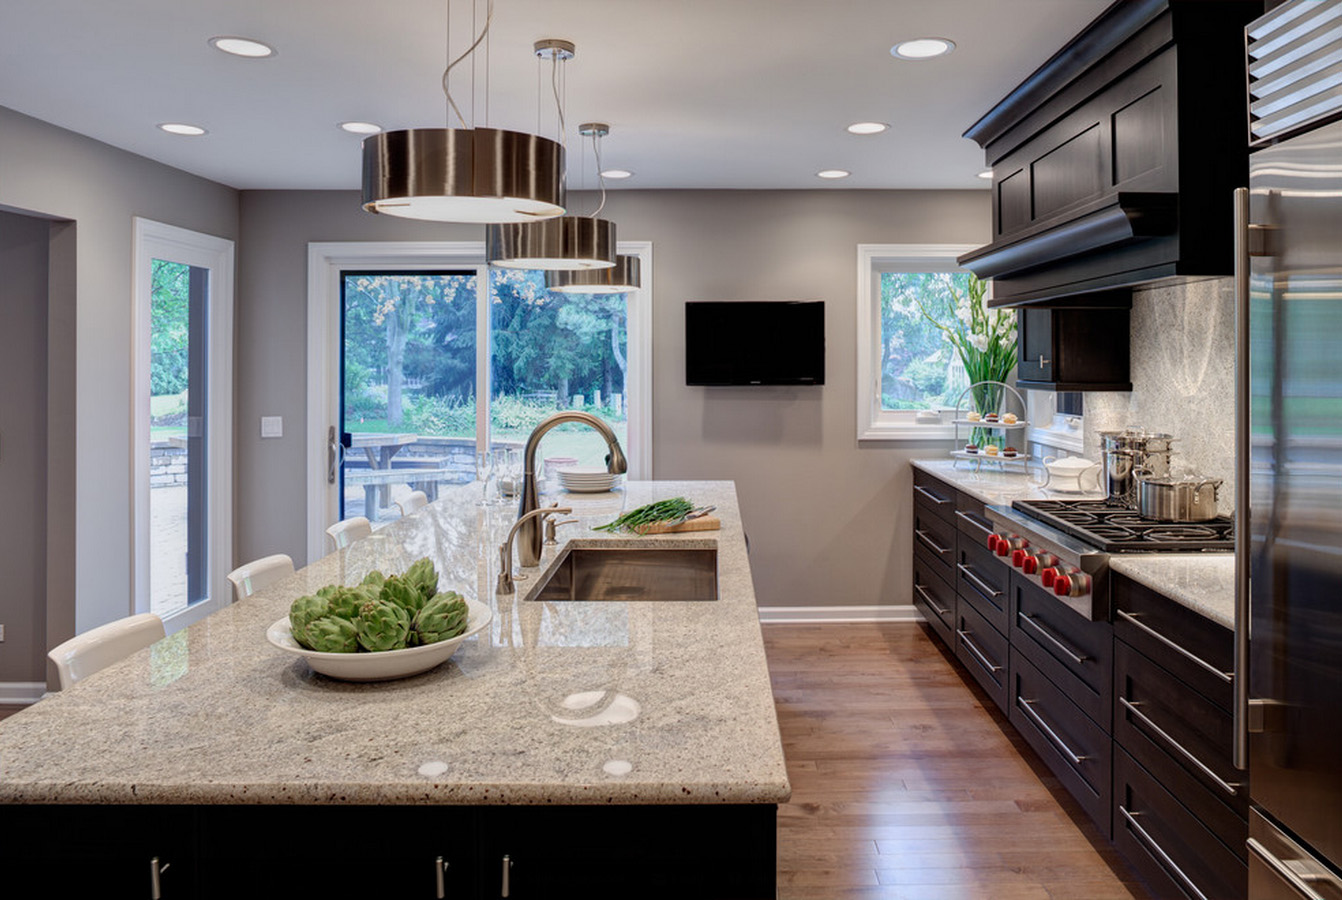 cost of remodeling kitchen retro tables and chairs top 15 stunning design ideas plus their costs